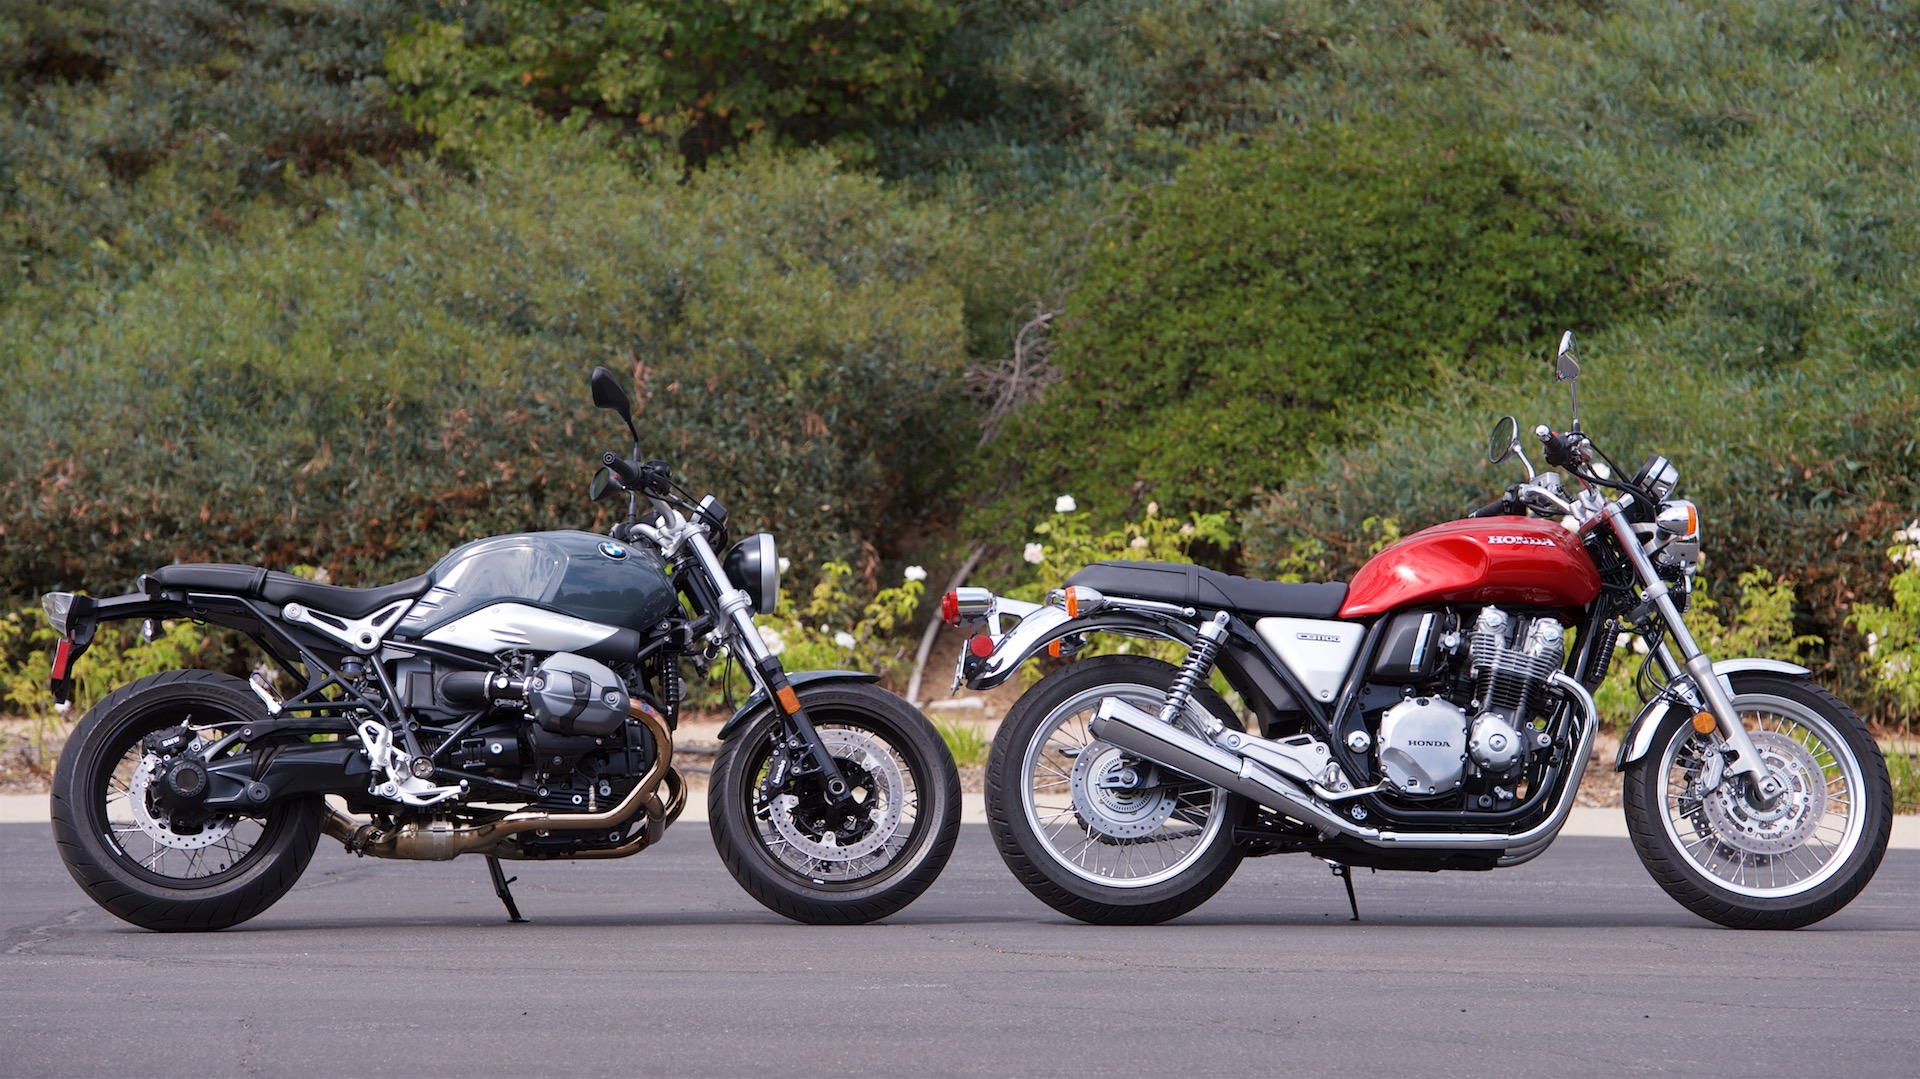 2017 Honda CB1100 EX vs BMW R nineT Pure Review